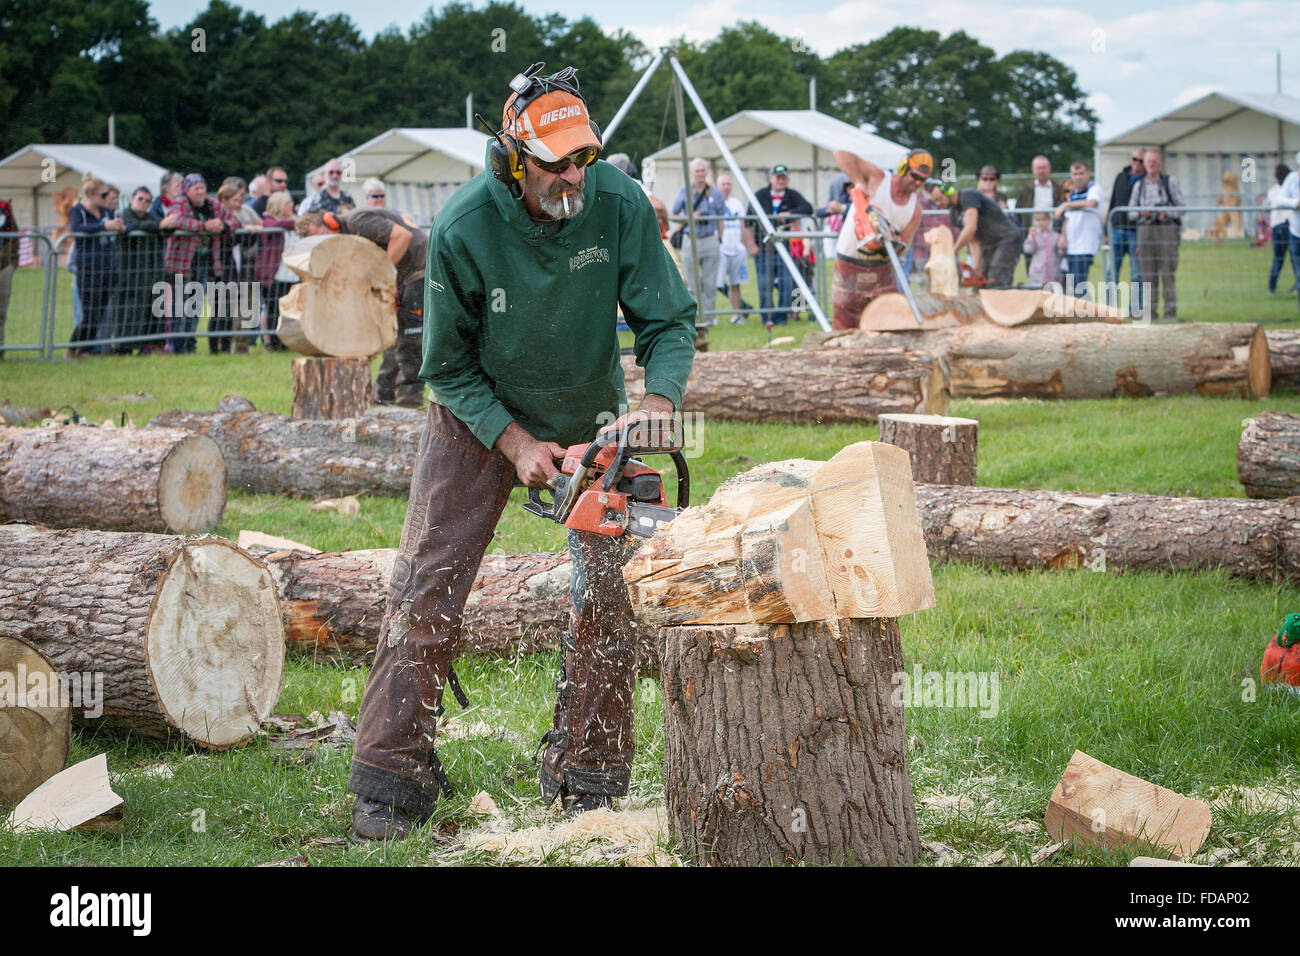 Th english open chainsaw carving stock photos